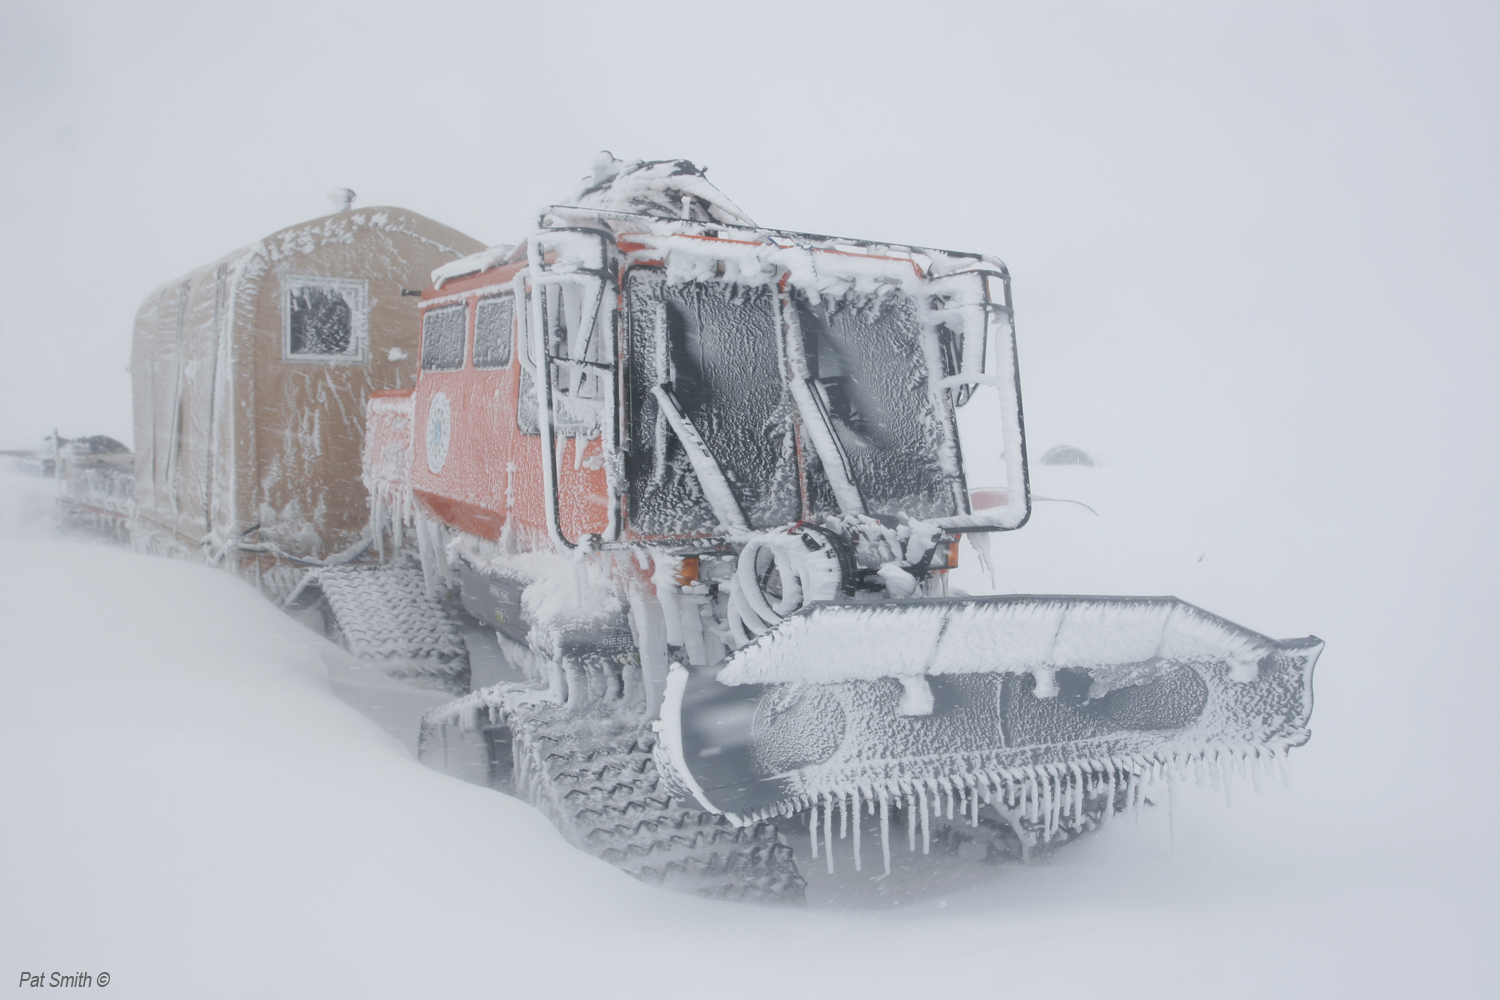 As the team nears Thule, they've encountered significant snowstorms, similar to the one pictured here from 2011, which are slowing their progress. Photo: Pat Smith